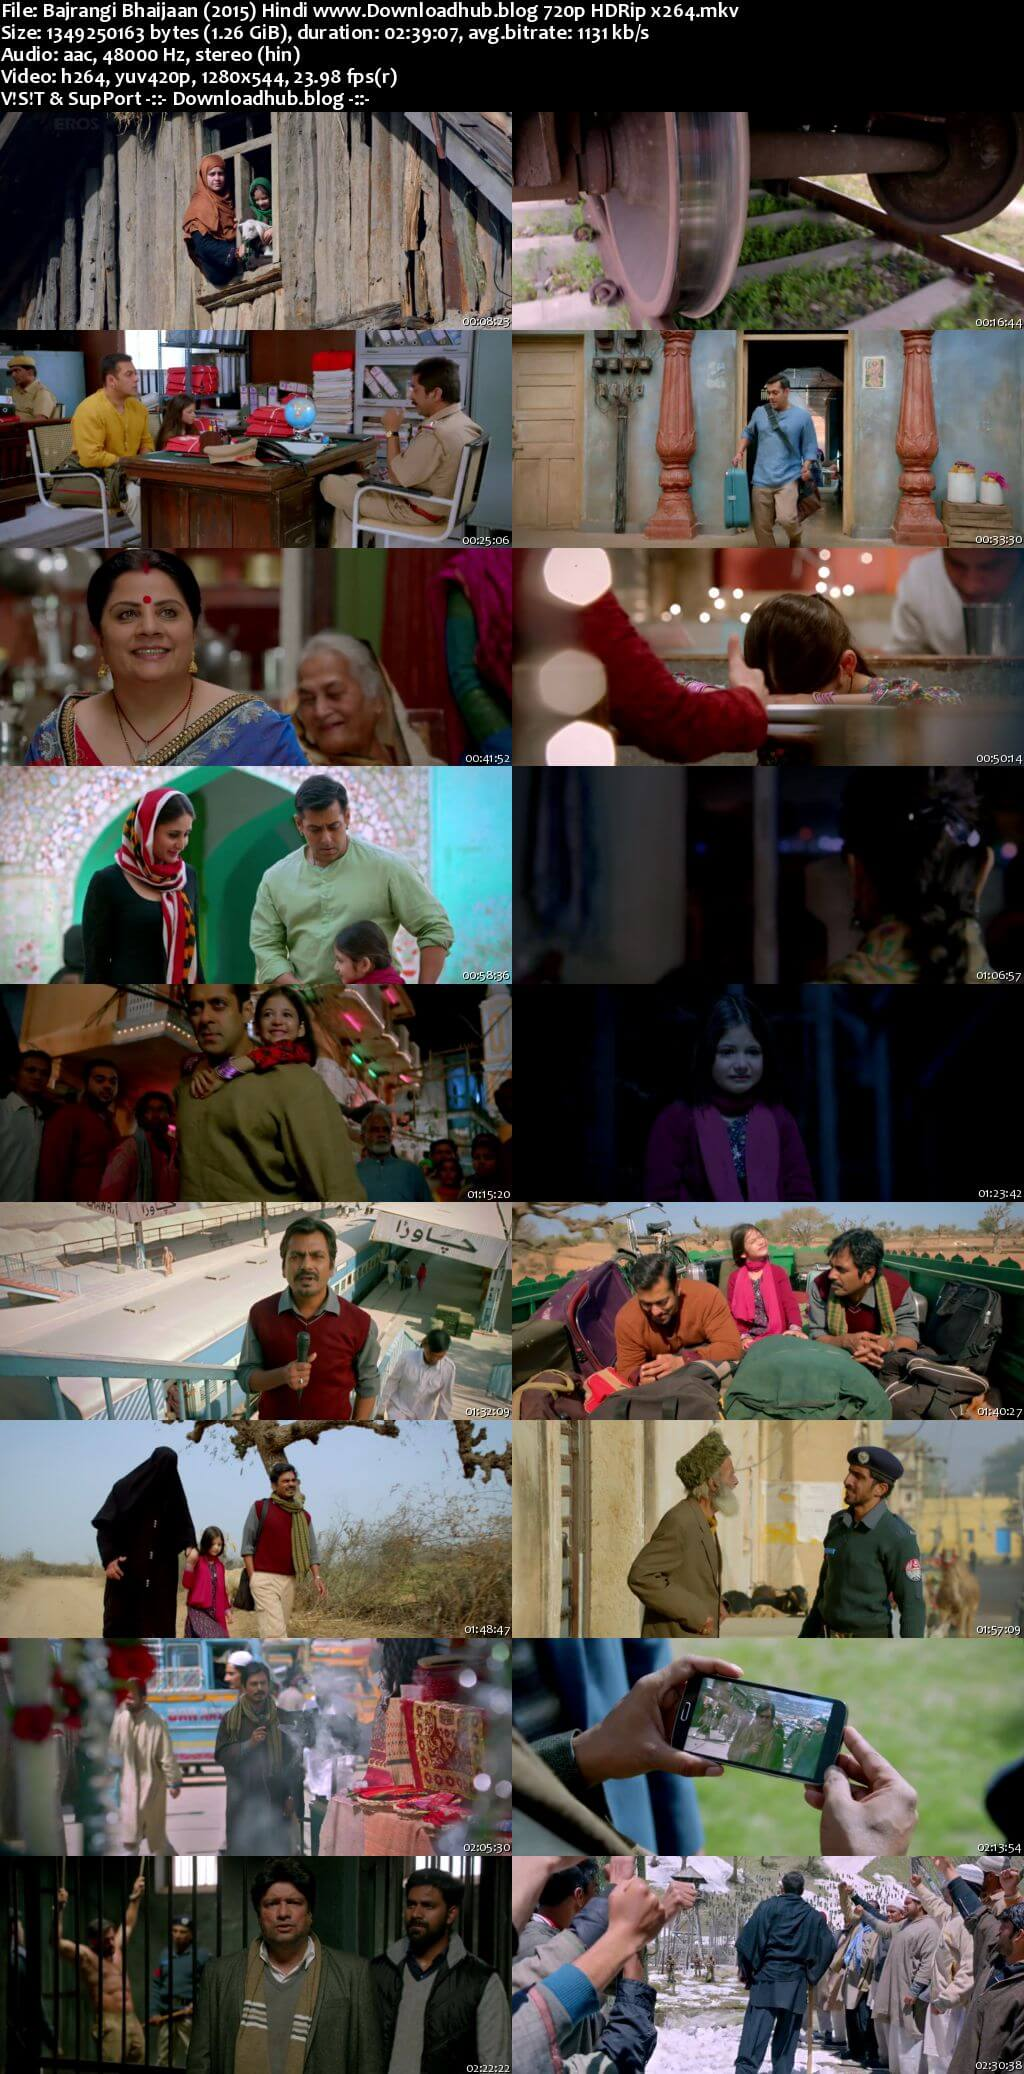 Bajrangi Bhaijaan 2015 Hindi 720p HDRip x264